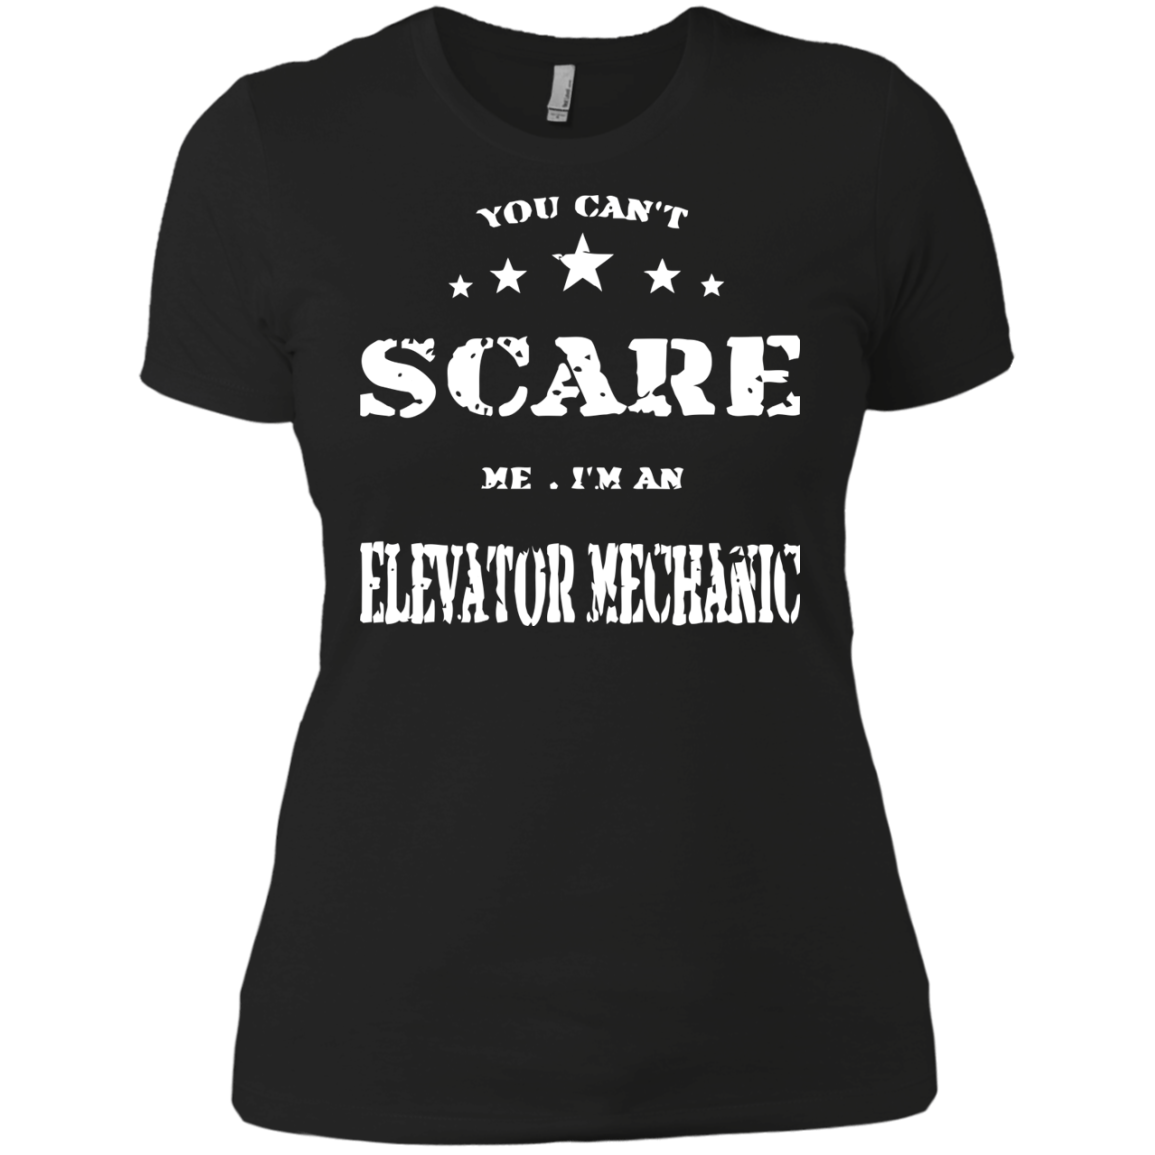 Elevator Mechanic T-Shirts Hoodies You Can't Scare MeT-Shirts Hoodies I Am Elevator Mechanic - Blue Fox